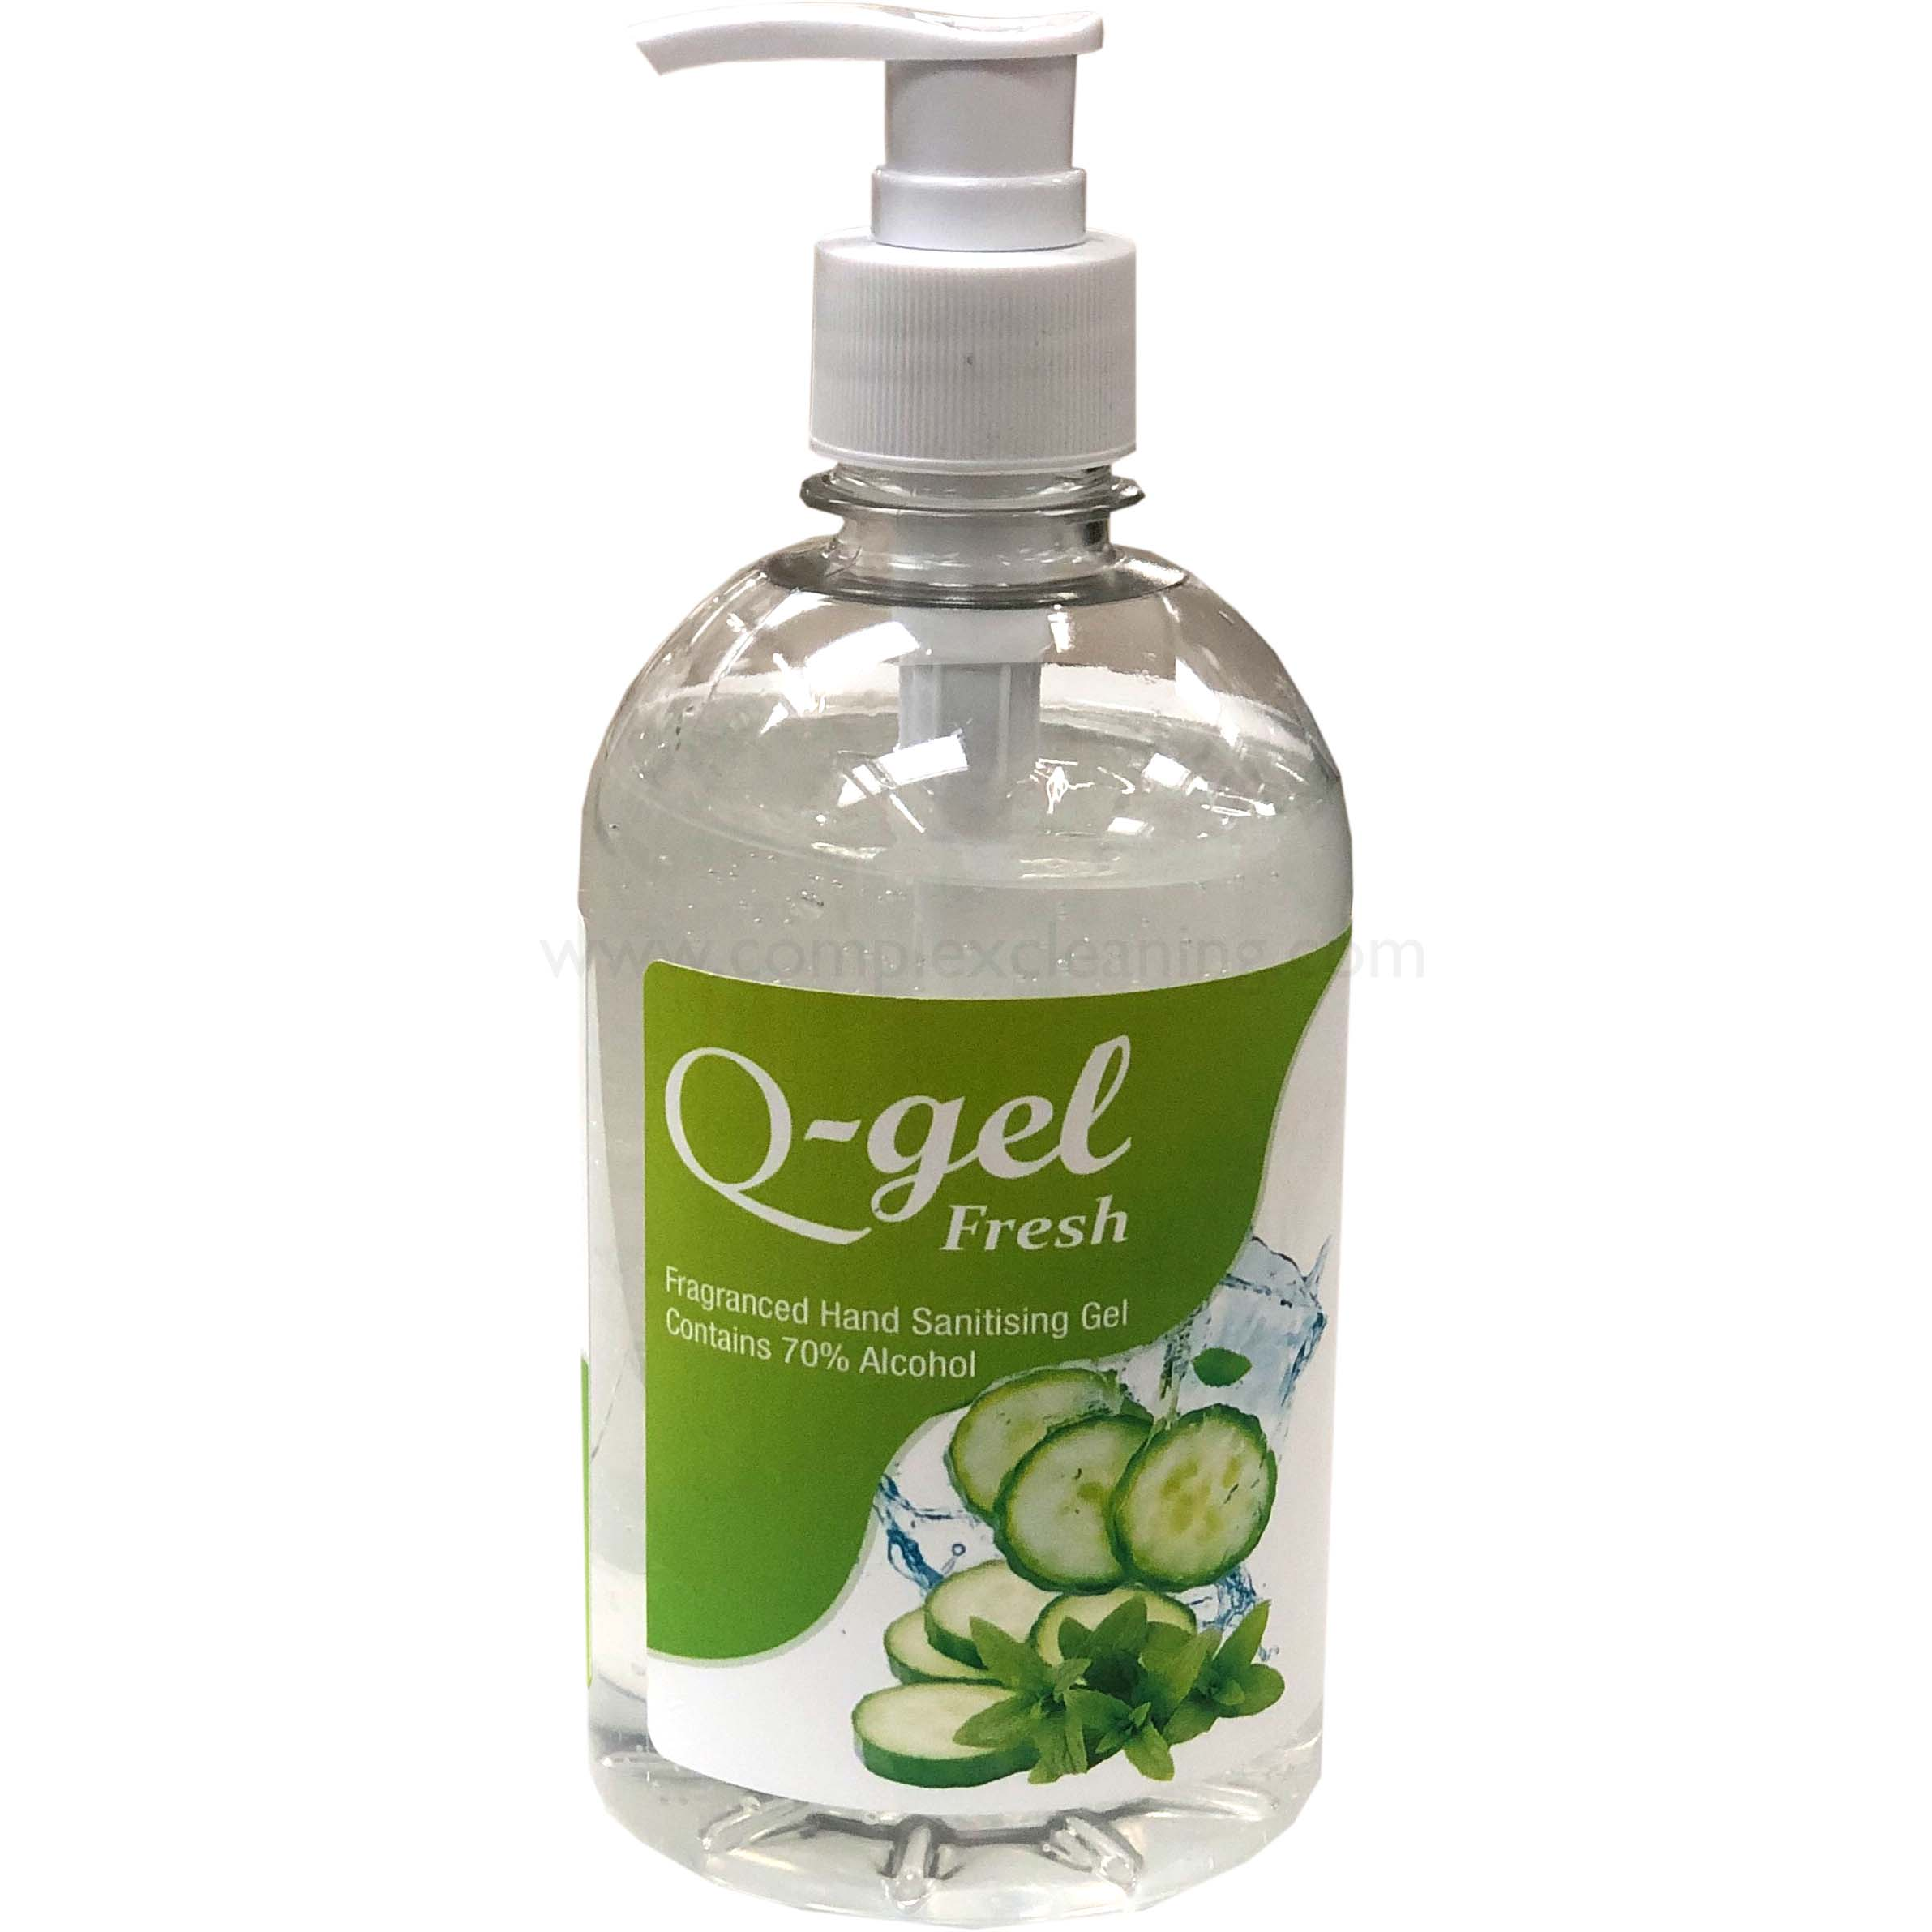 Q-Gel-Fresh-Cucumber---Mint-Hand-Sanitising-Gel-70%25-alcohol-500ml--single-